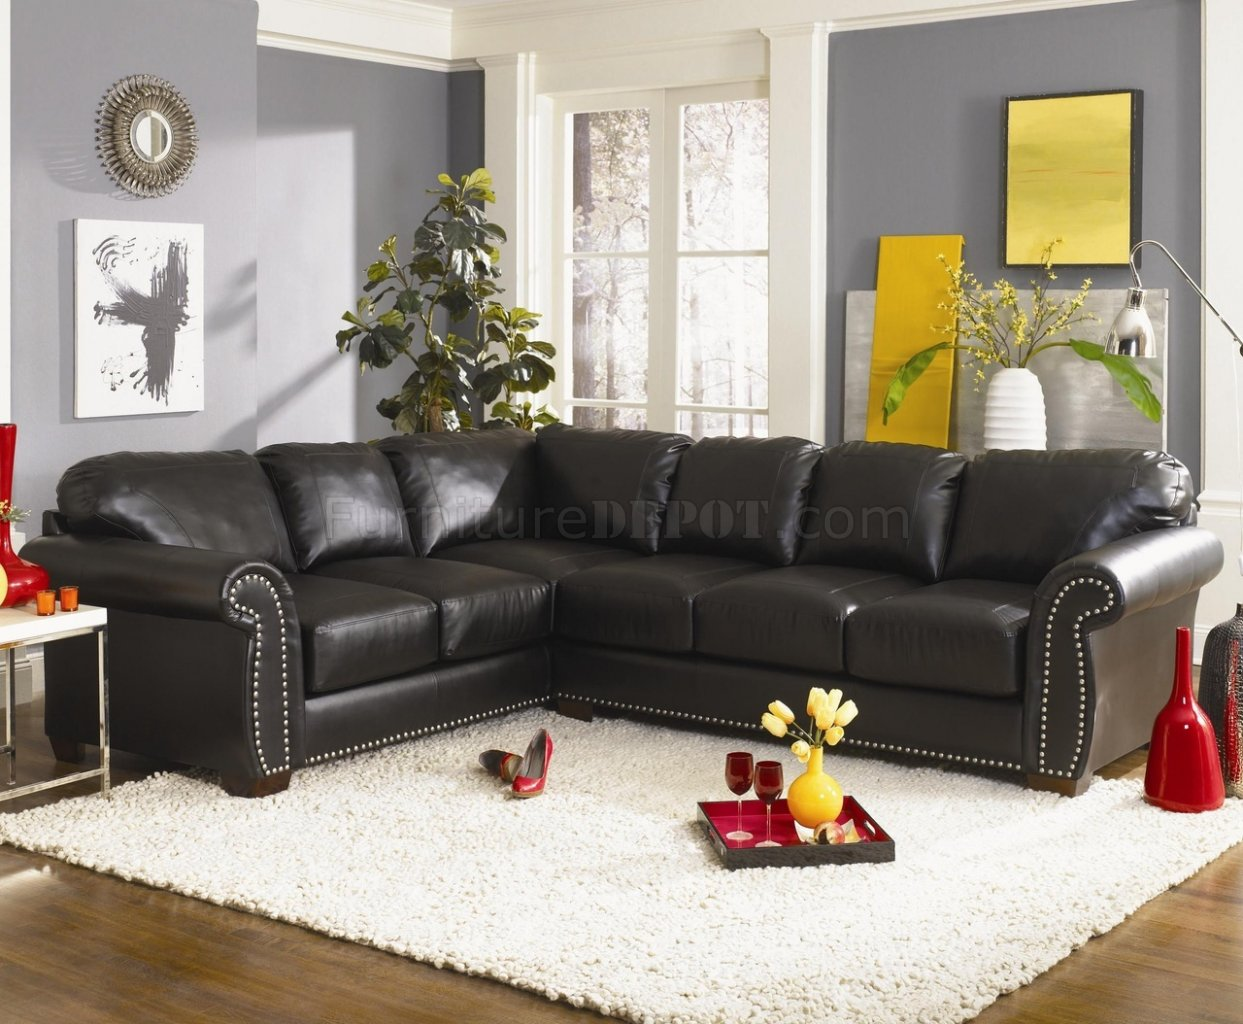 Burgundy or black bonded leather classic sectional sofa